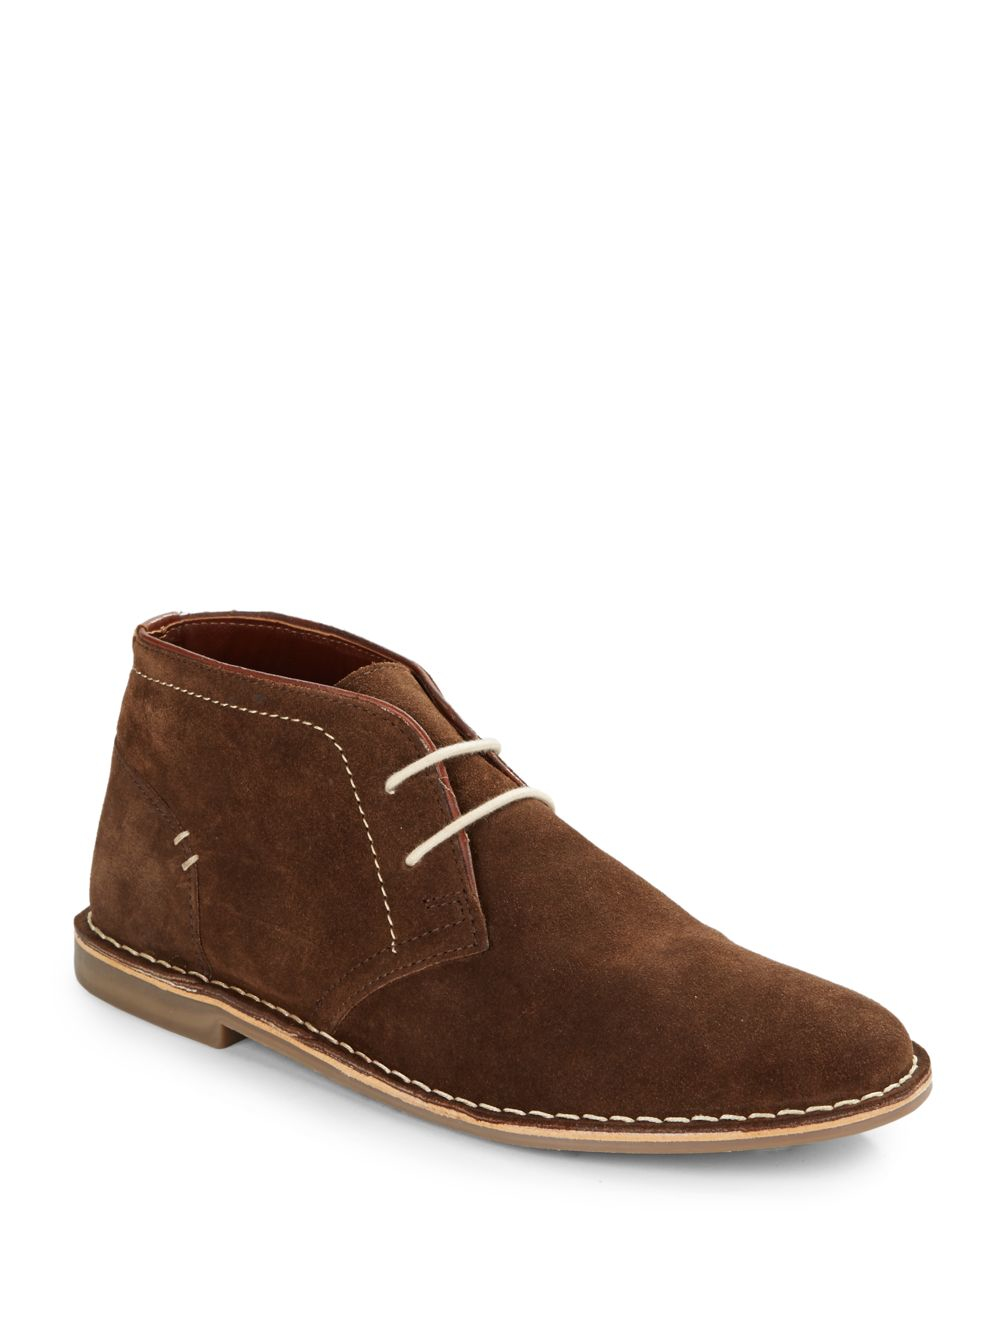 b1e86be5ea2 Steve Madden Brown Durvish Suede Chukka Boots for men